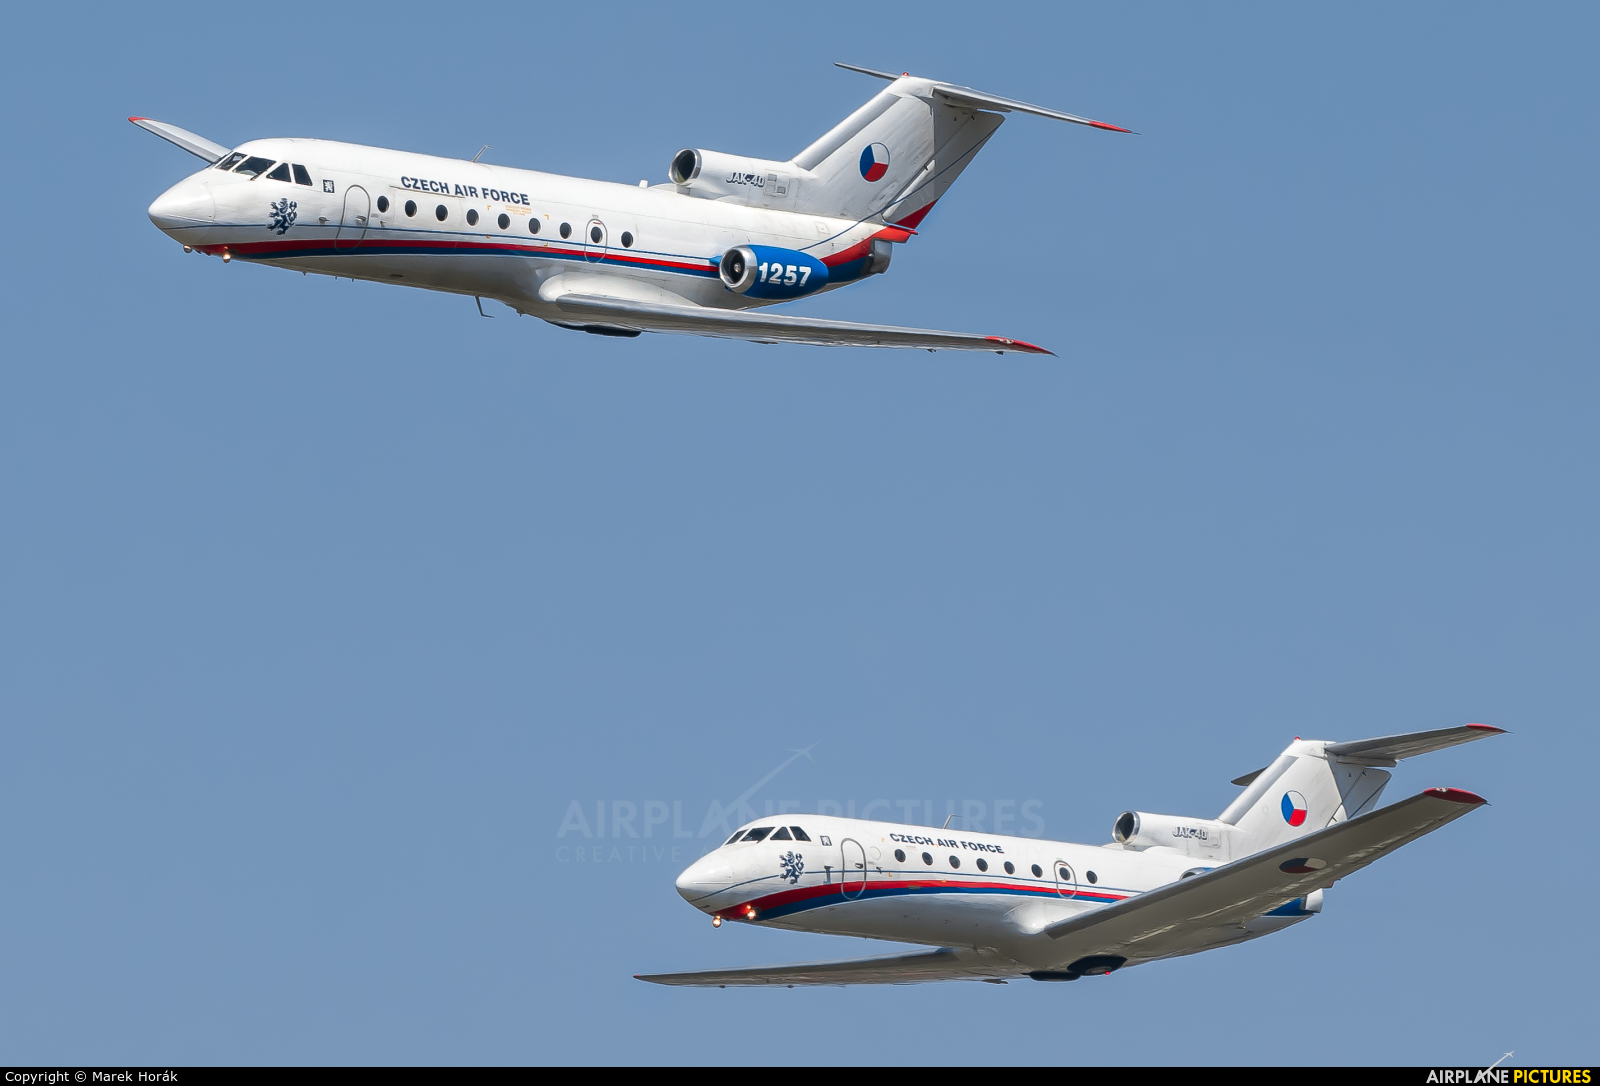 Czech - Air Force 1257 aircraft at Prague - Kbely